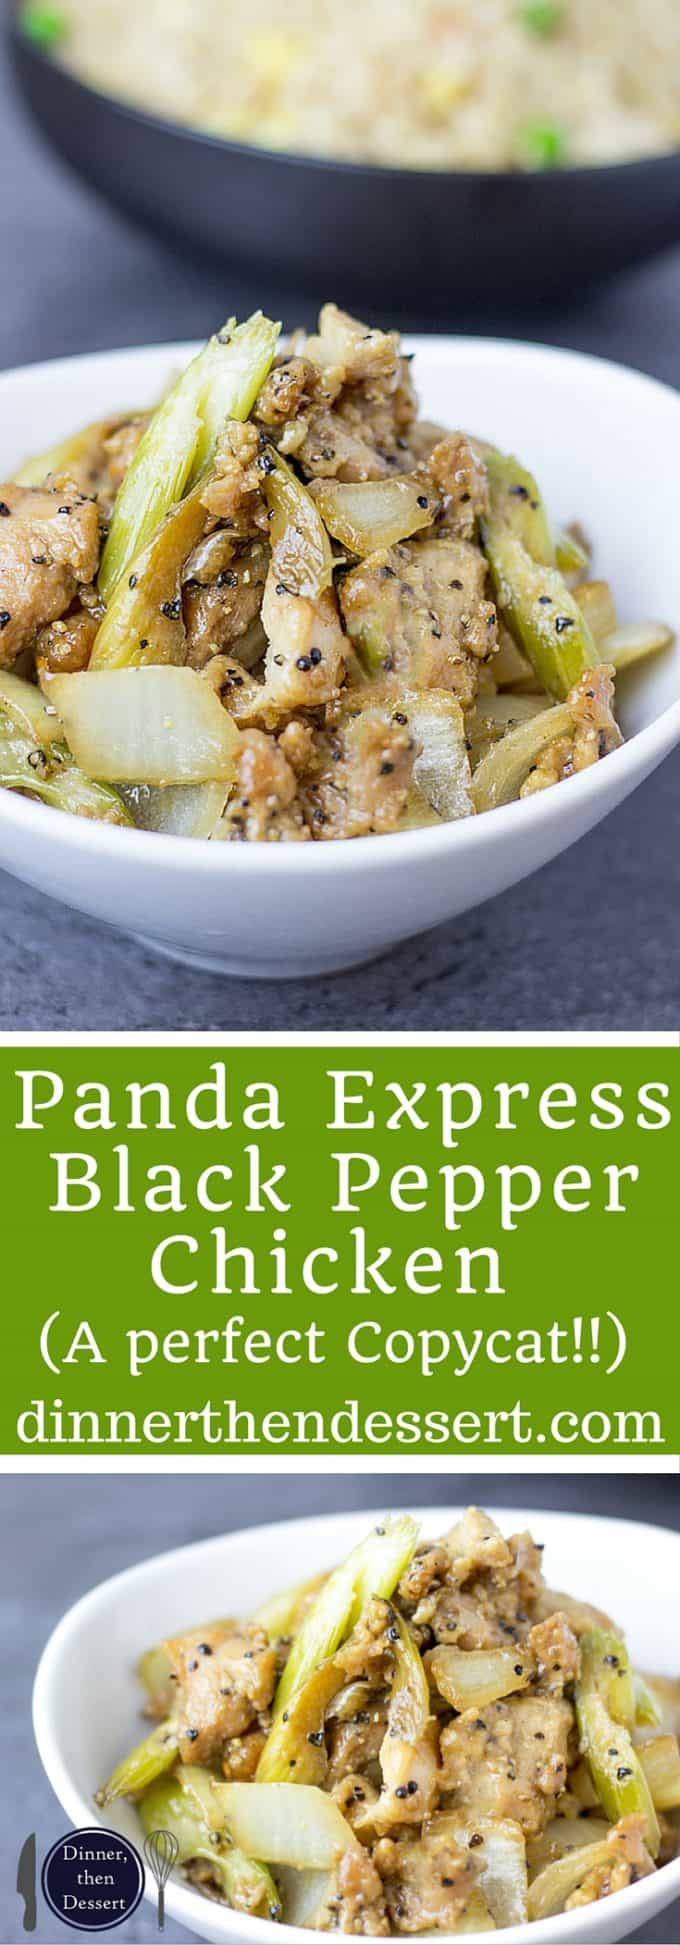 Panda Express Black Pepper Chicken is marinated ginger soy chicken, in a peppery black pepper sauce with celery and onions that tastes exactly like the Panda Express version you love! And really low in fat and WW points!